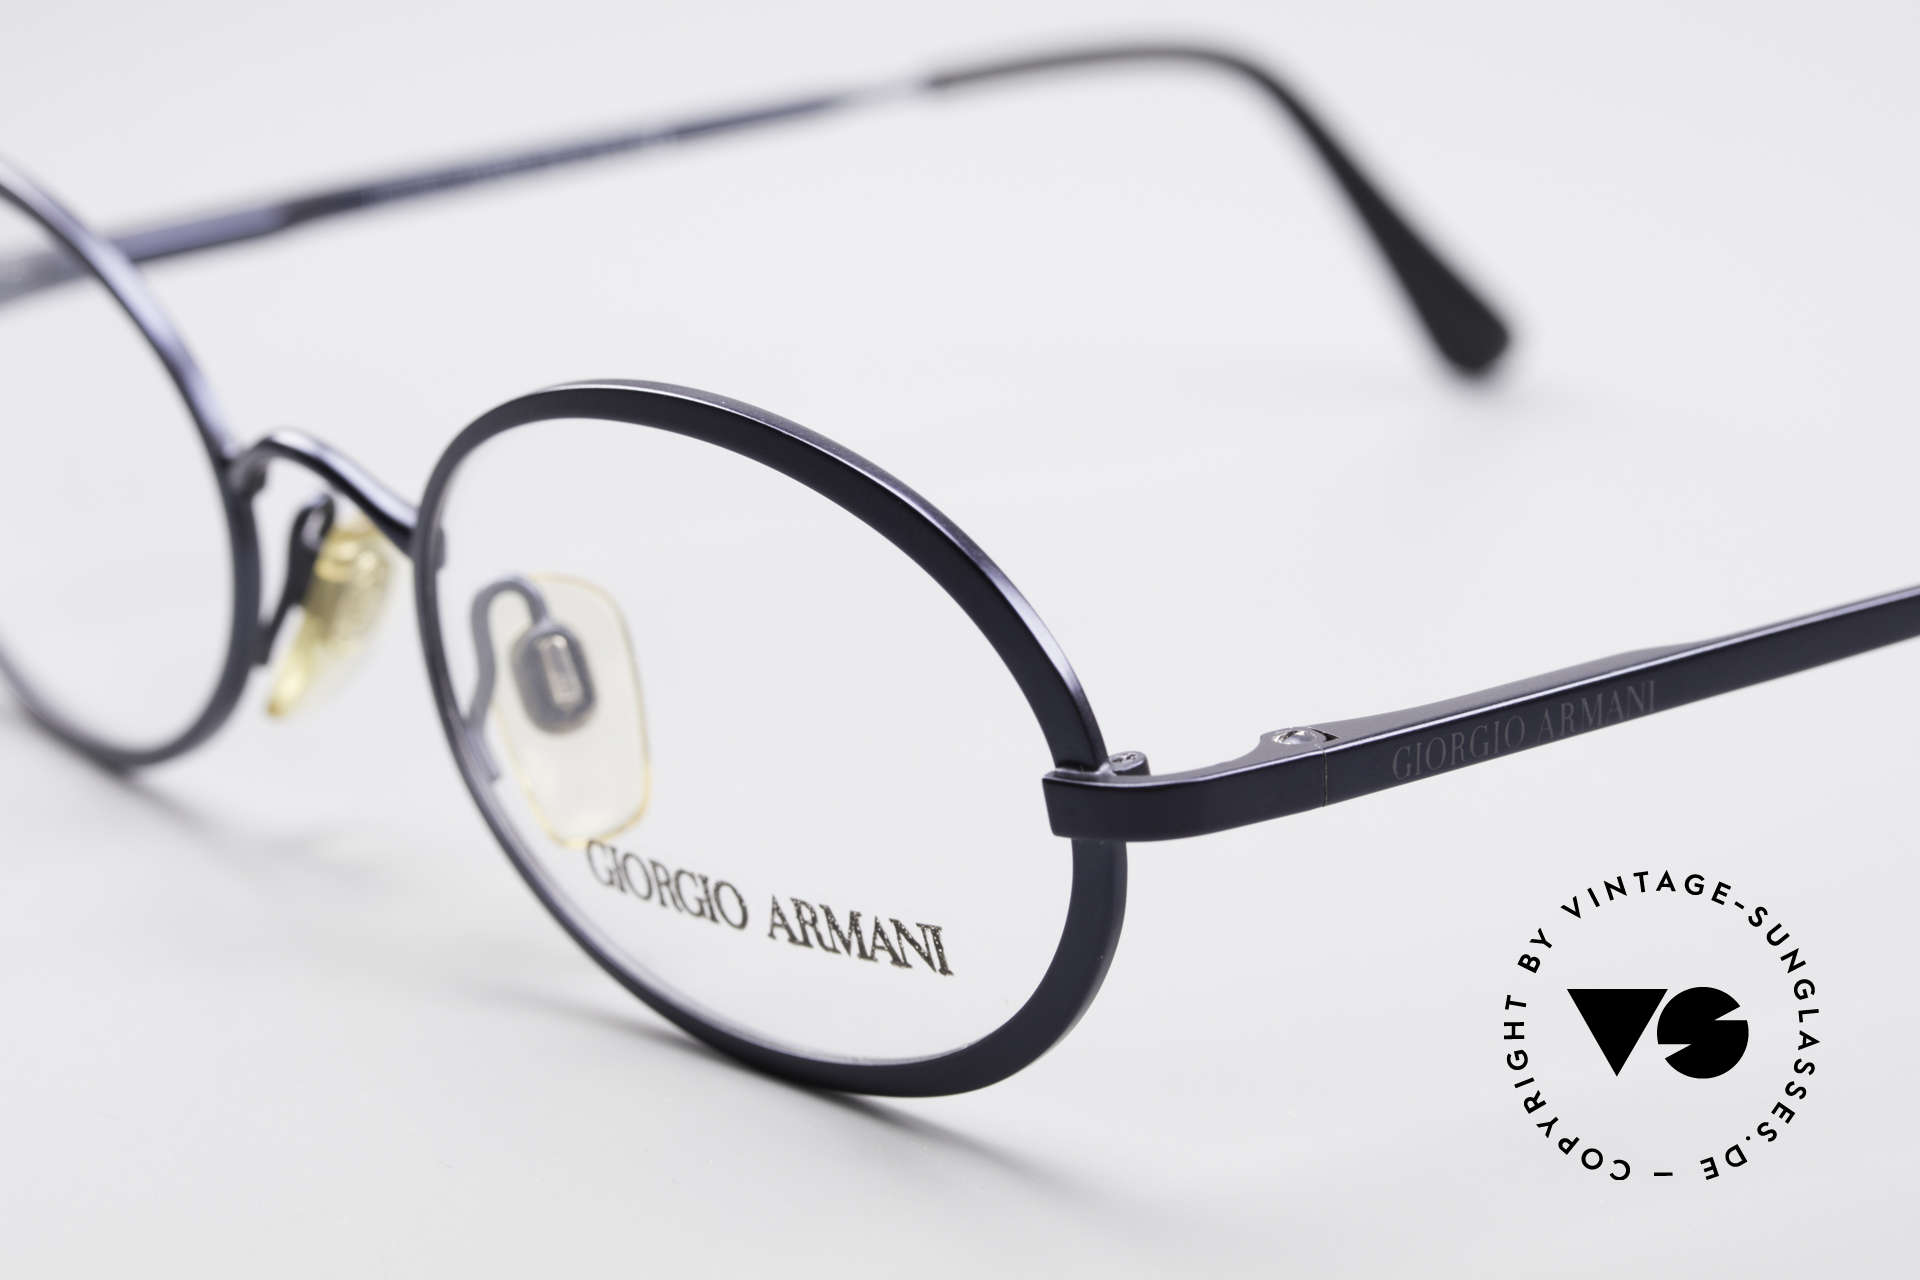 Giorgio Armani 277 90's Oval Vintage Eyeglasses, never worn (like all our 1990's designer classics), Made for Men and Women